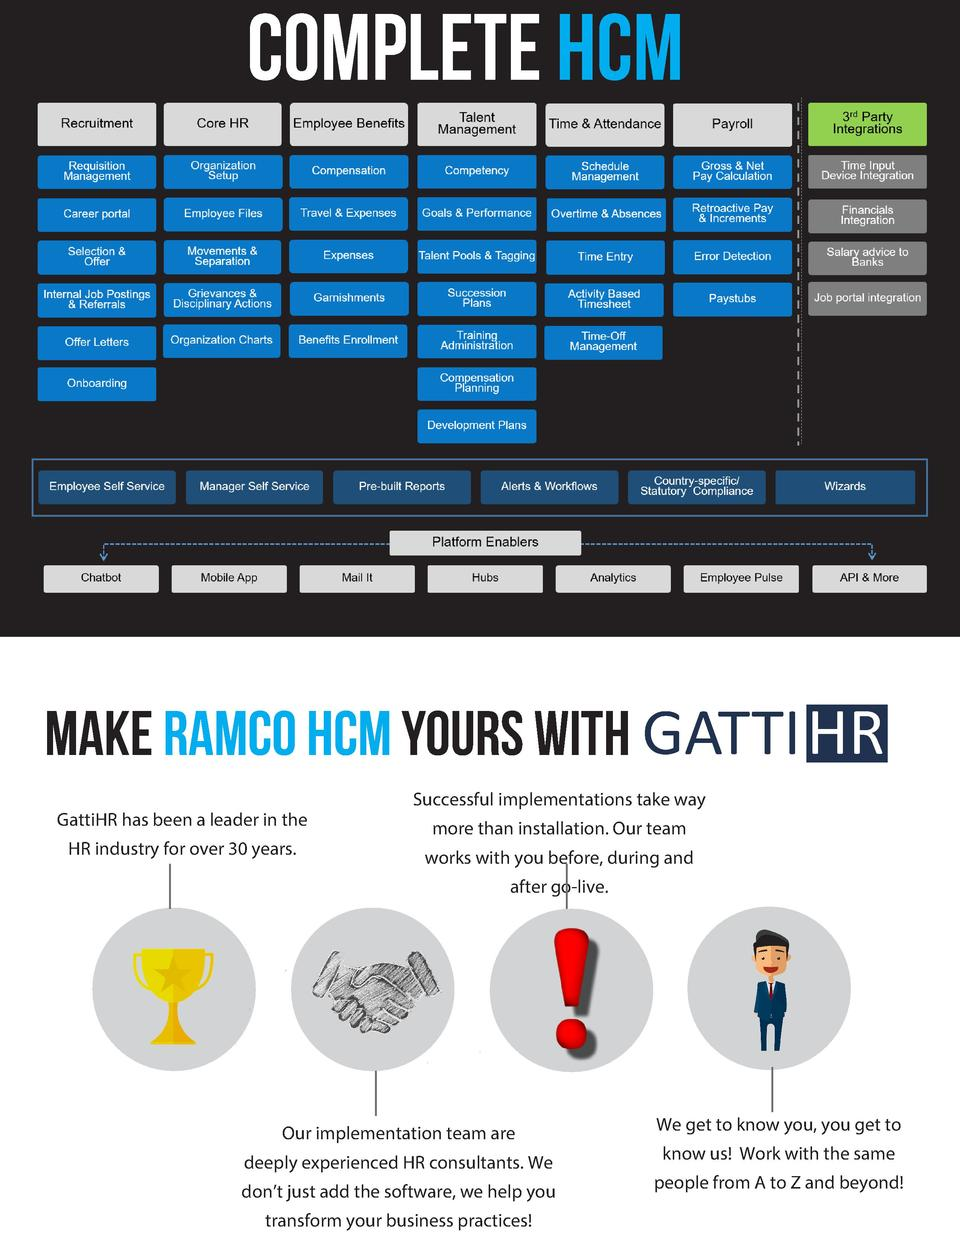 COMPLETE HCM  Make Ramco HCM yours with GattiHR has been a leader in the HR industry for over 30 years.  Successful implem...